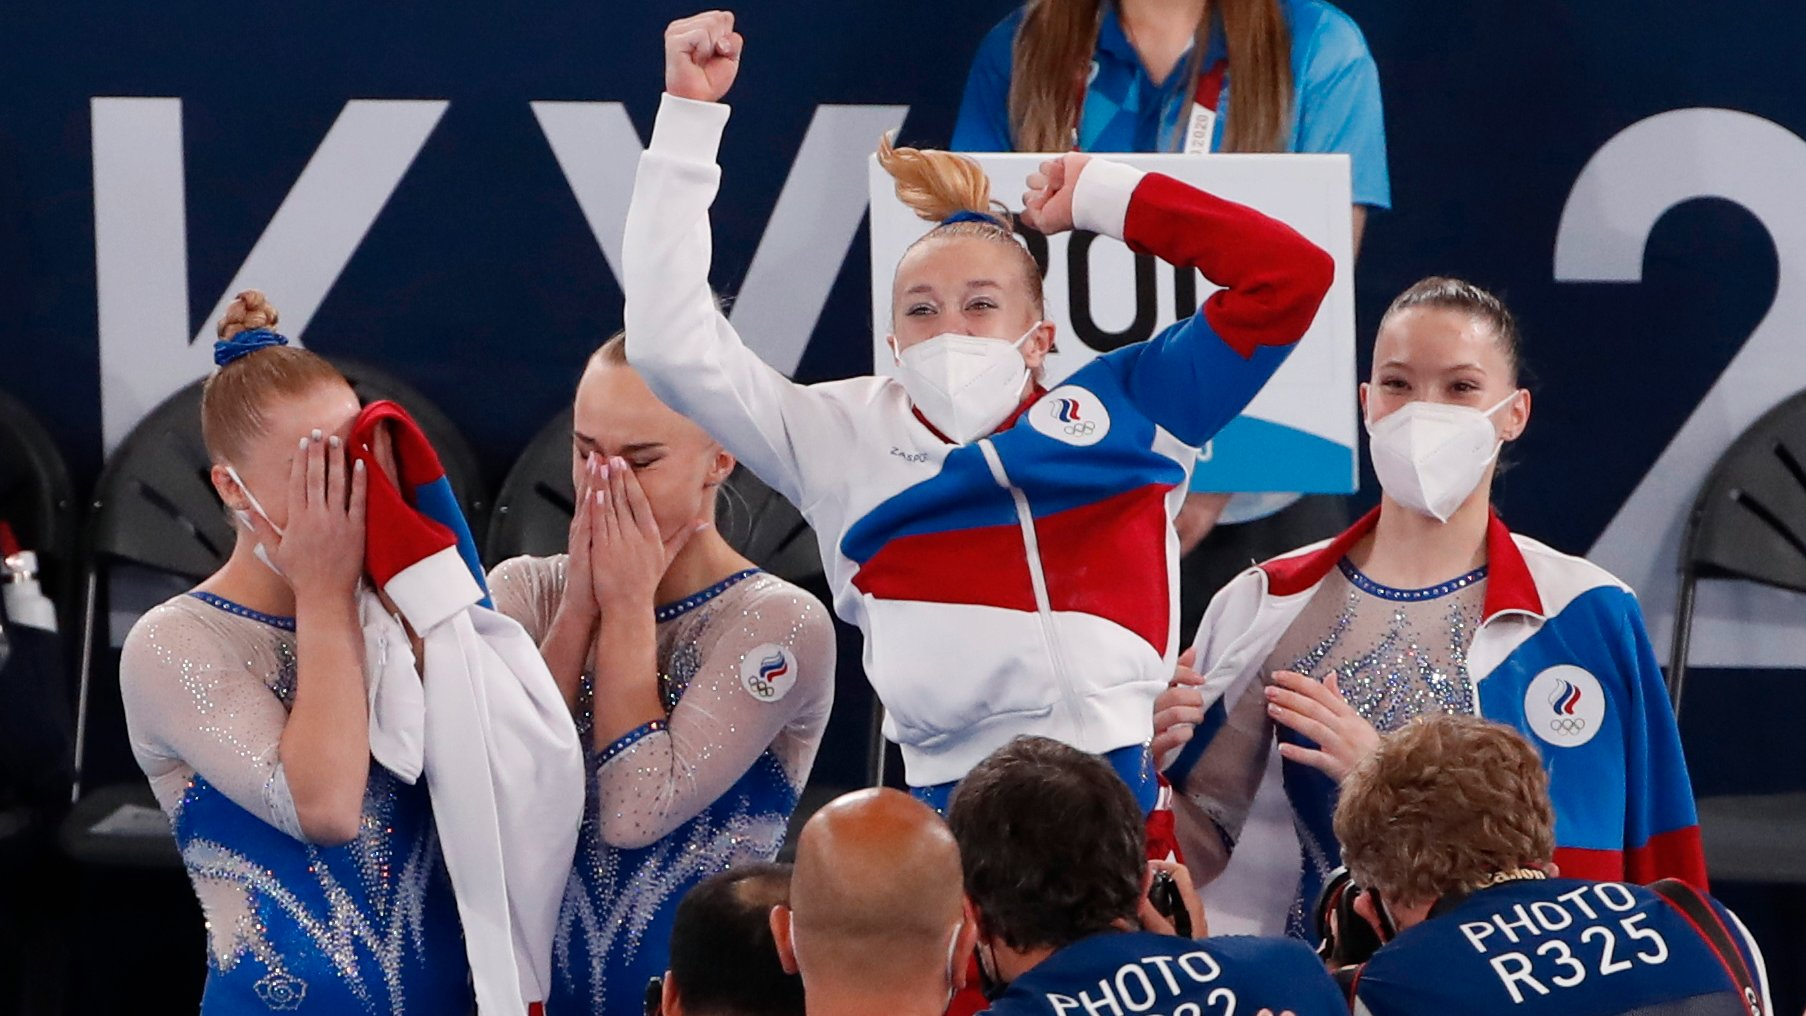 epa09370753 Gymnasts of Russia react during the Artistic Gymnastics Women Final of the Tokyo 2020 Olympic Games at the Ariake Gy?mnas?tics Centre in Tokyo, Japan, 27 July 2021  EPA/TATYANA ZENKOVICH